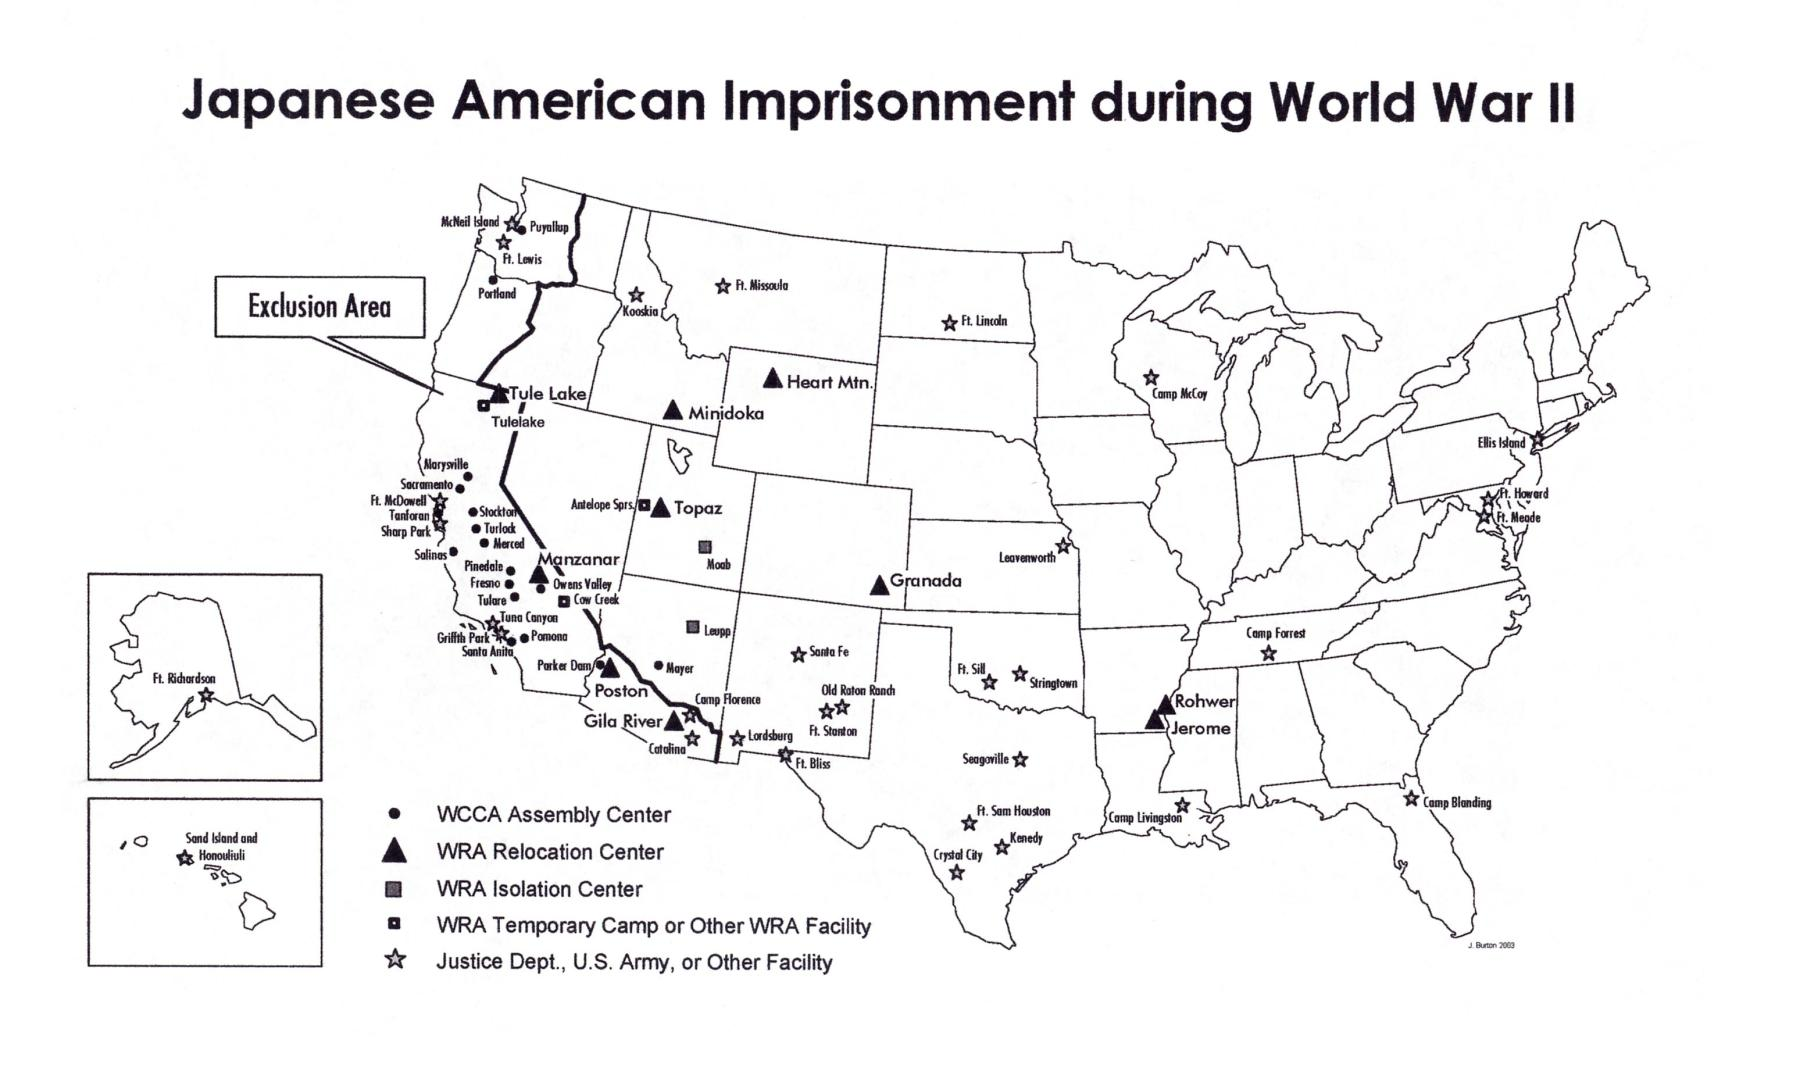 Image Bibliography - Map of japanese internment camps in us